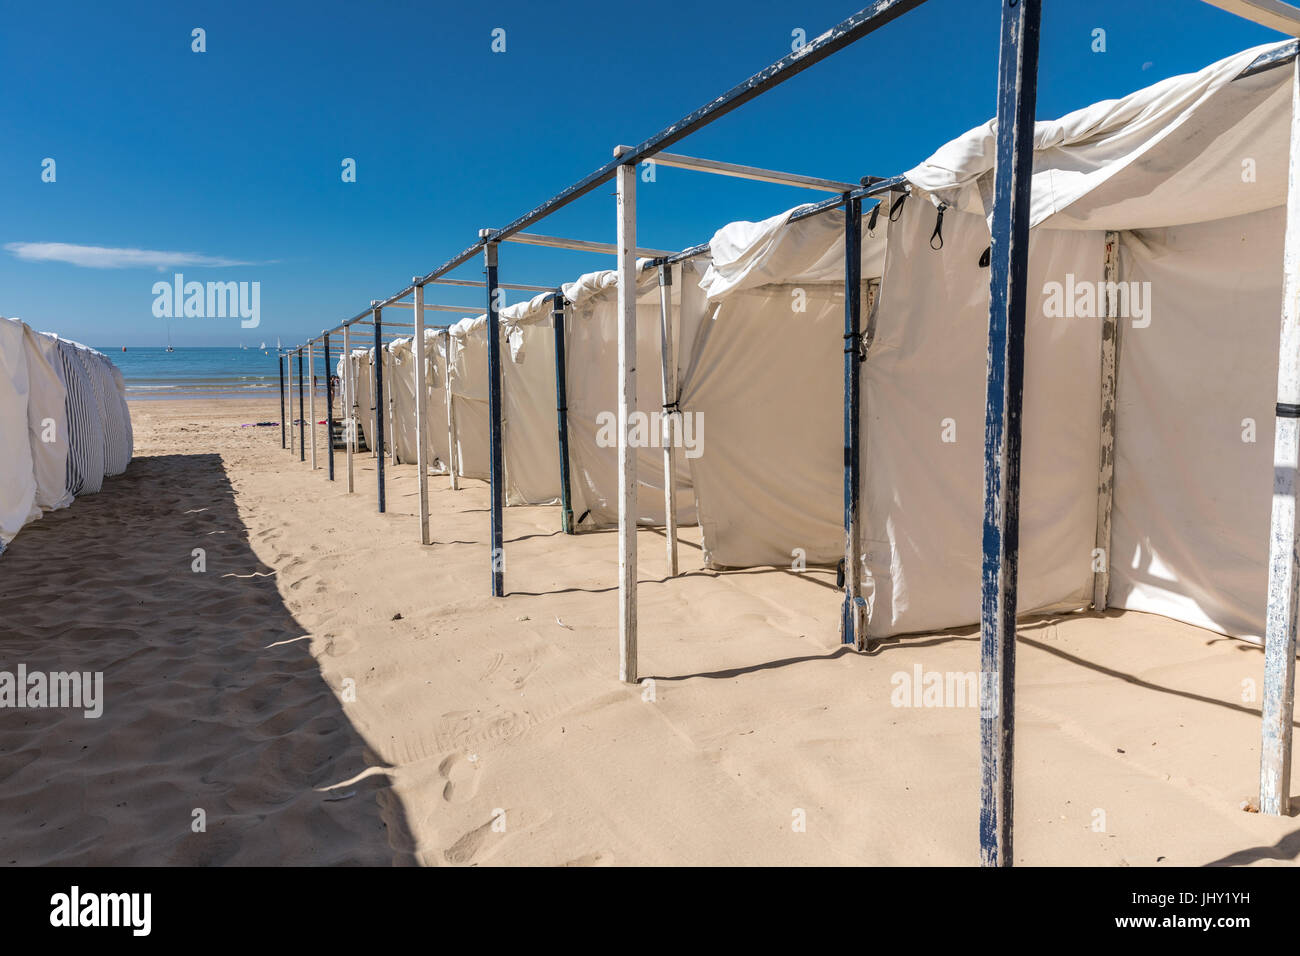 Tents on the beach of Les Sables d'Olonne beach in the France west coast - Stock Image